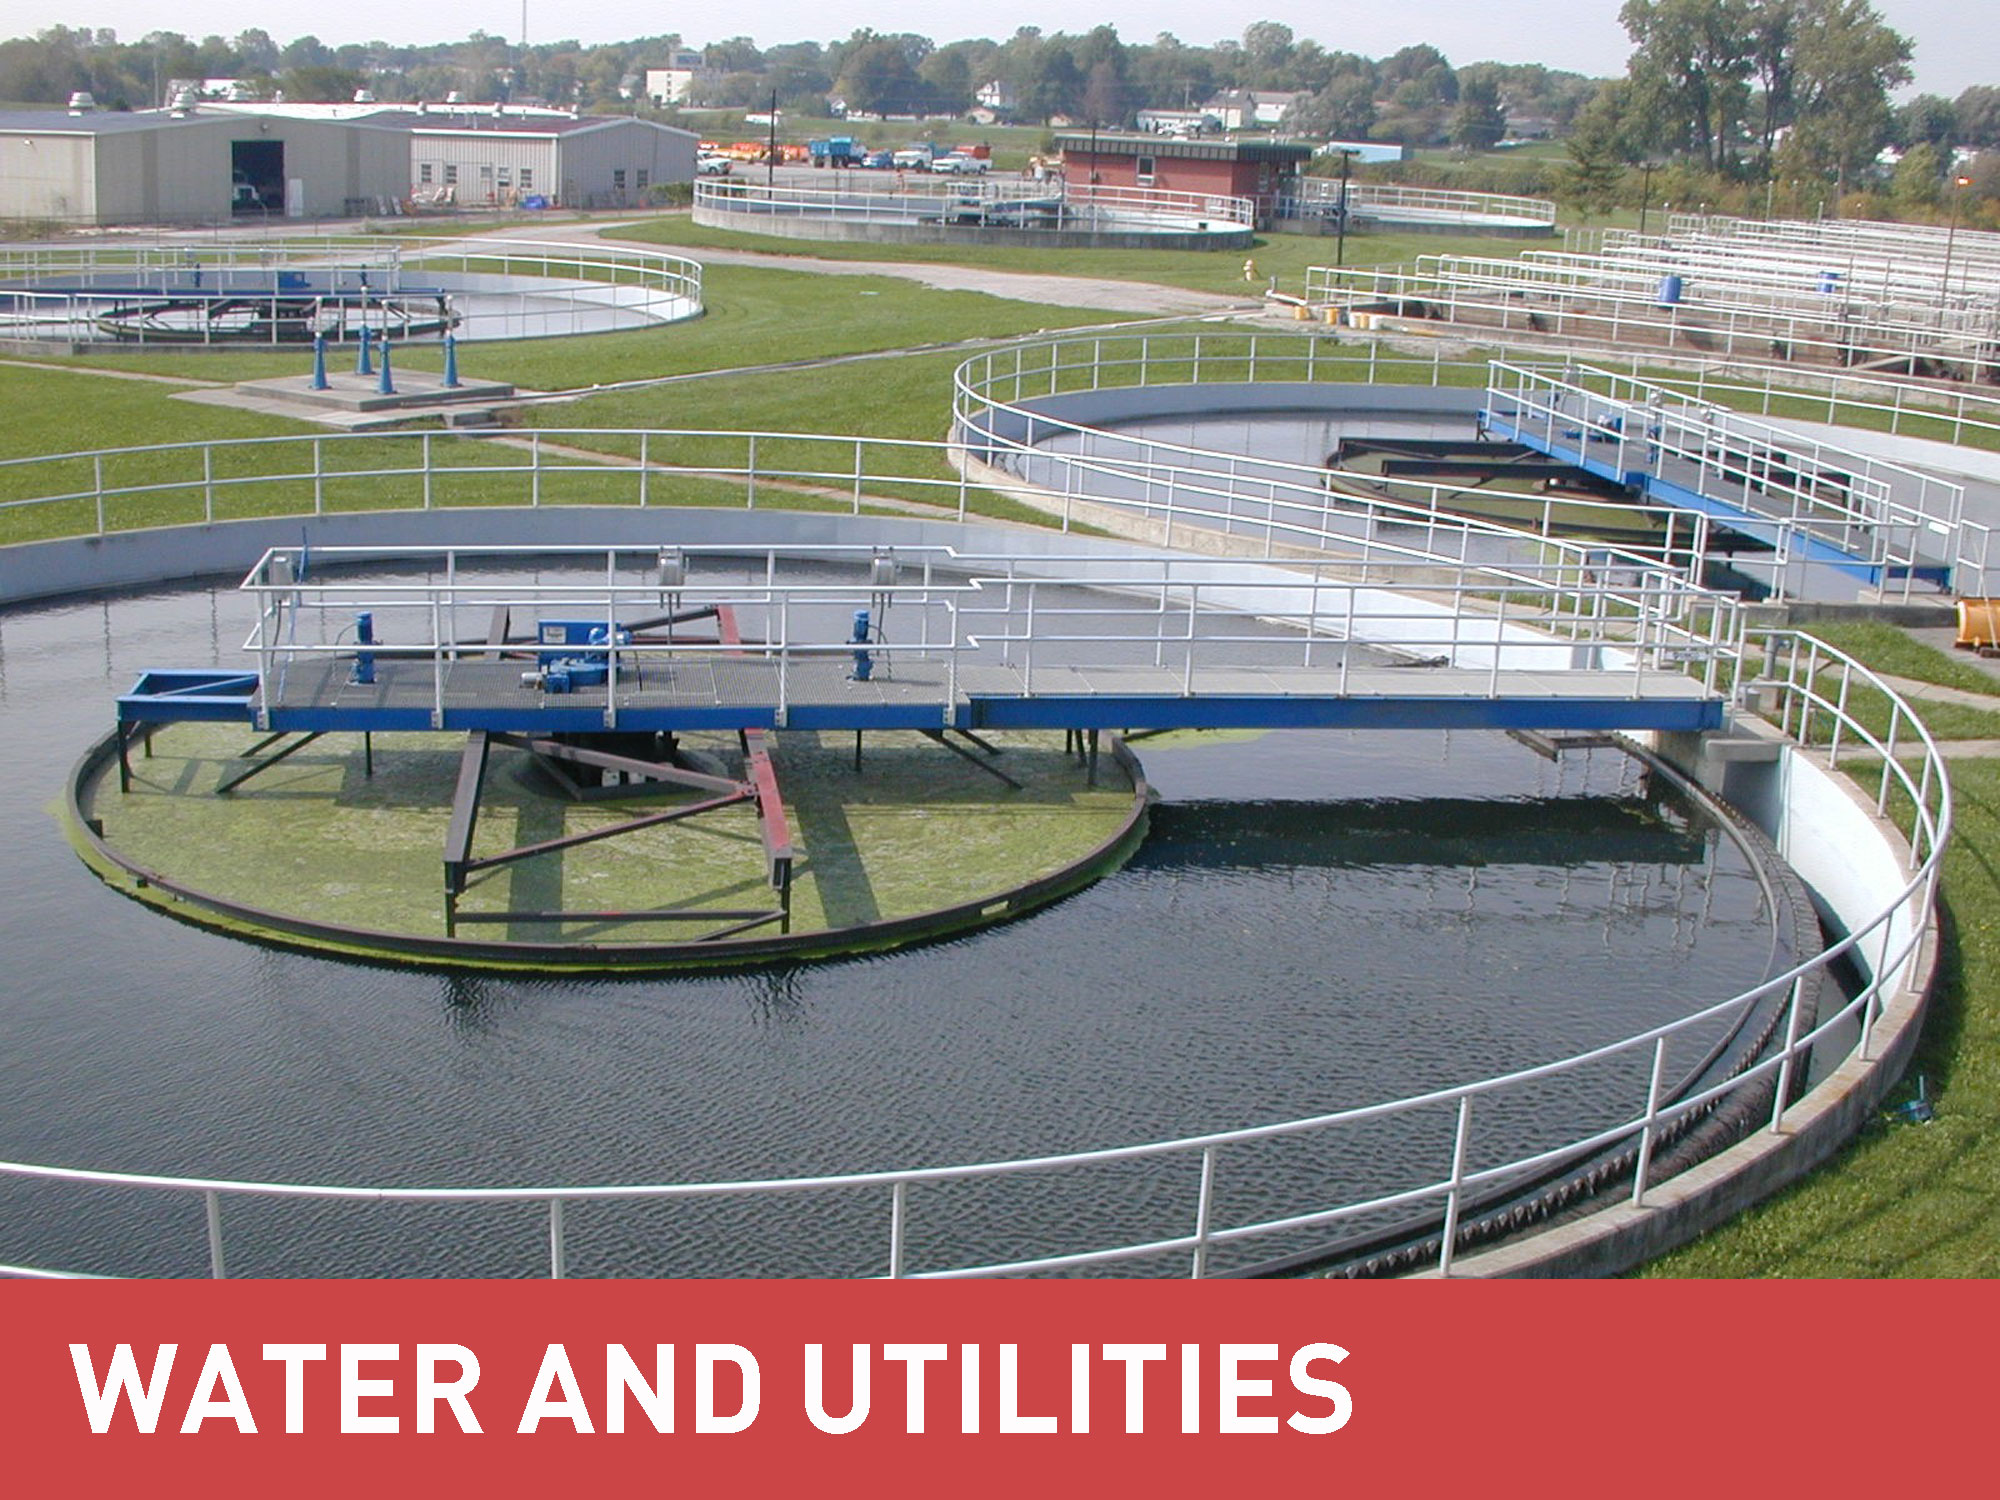 MGF water and utilities category with a water plant works image background